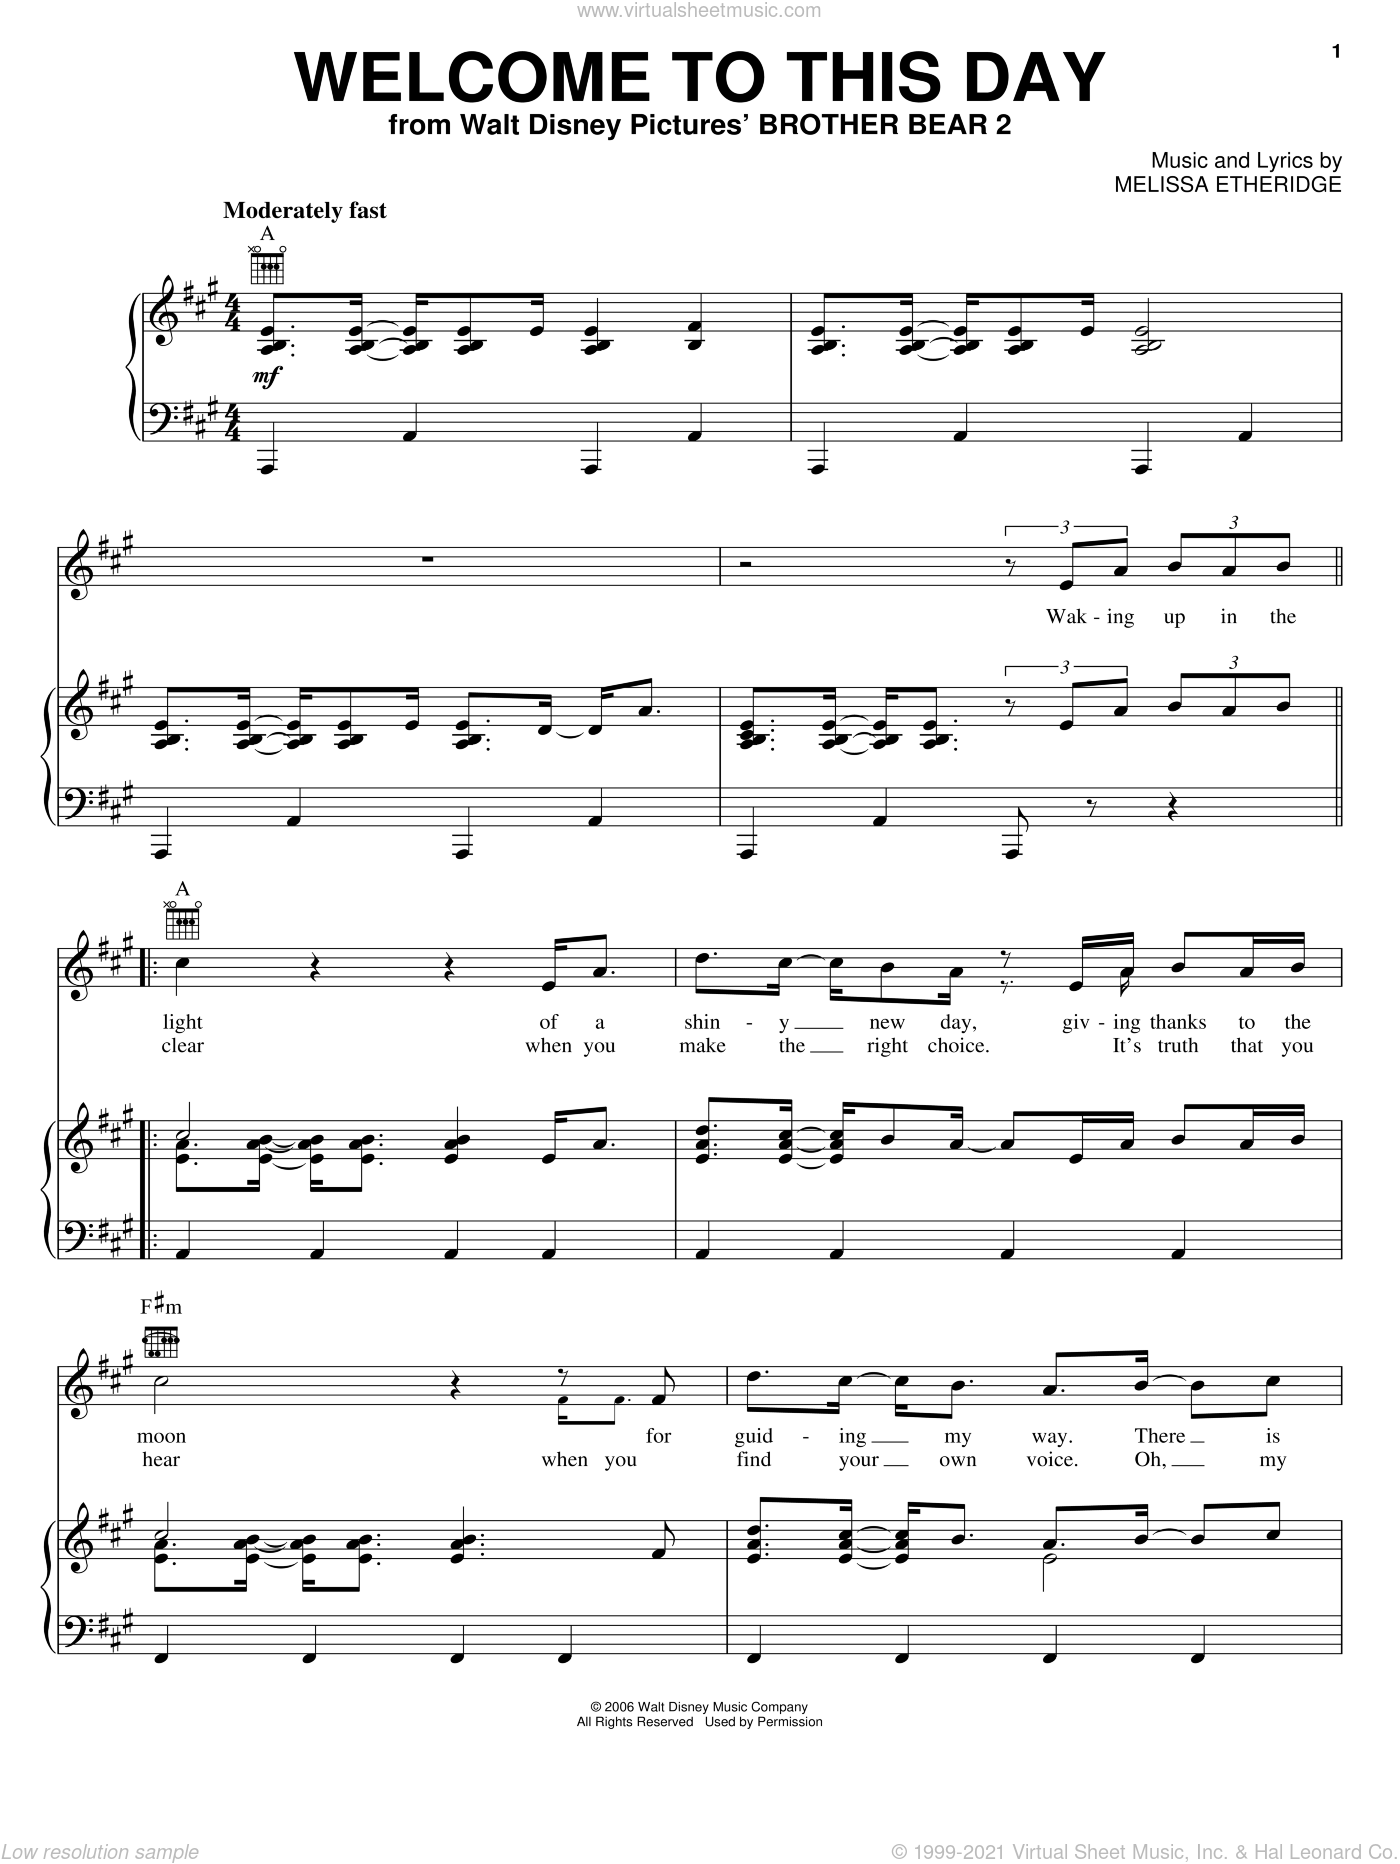 Welcome To This Day sheet music for voice, piano or guitar by Melissa Etheridge. Score Image Preview.